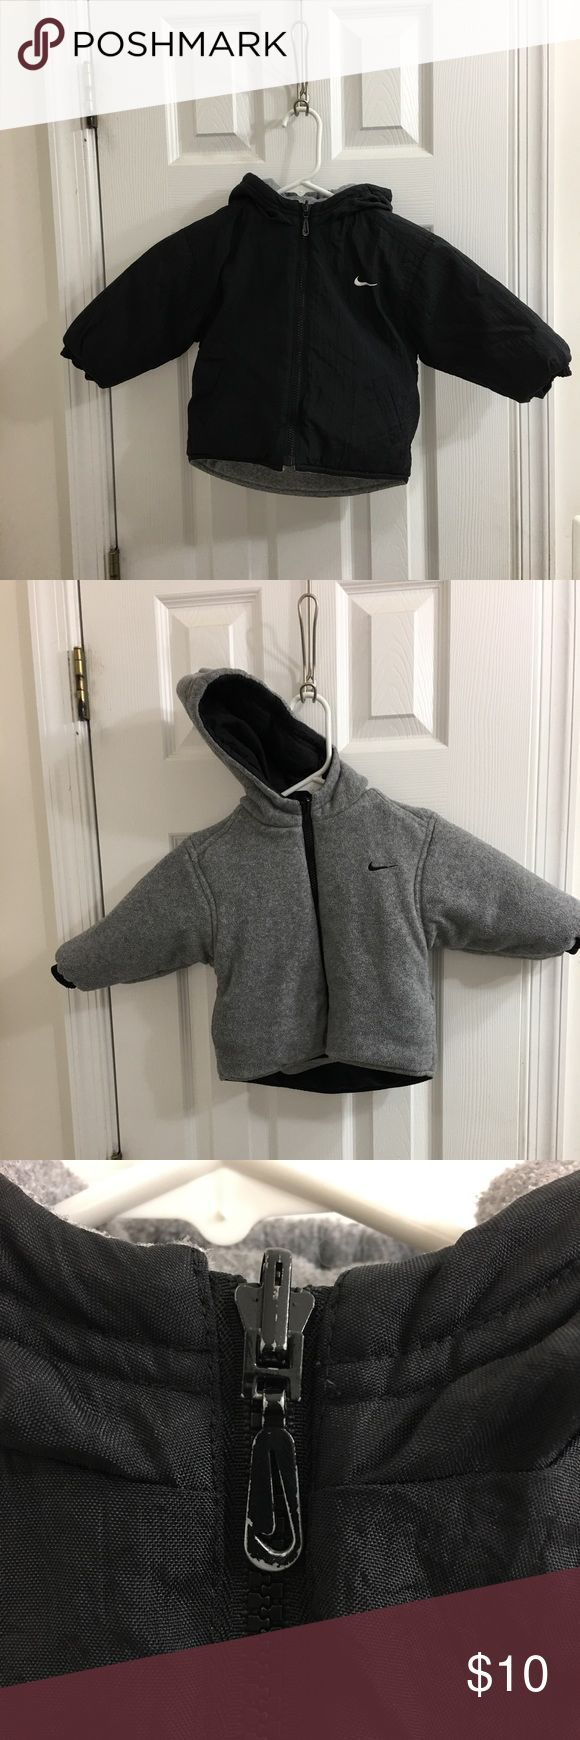 Boys Reversible Nike coat Very thick and warm, reversible, size 2t, good condition with some wear on zipper (see pictures) Jackets & Coats